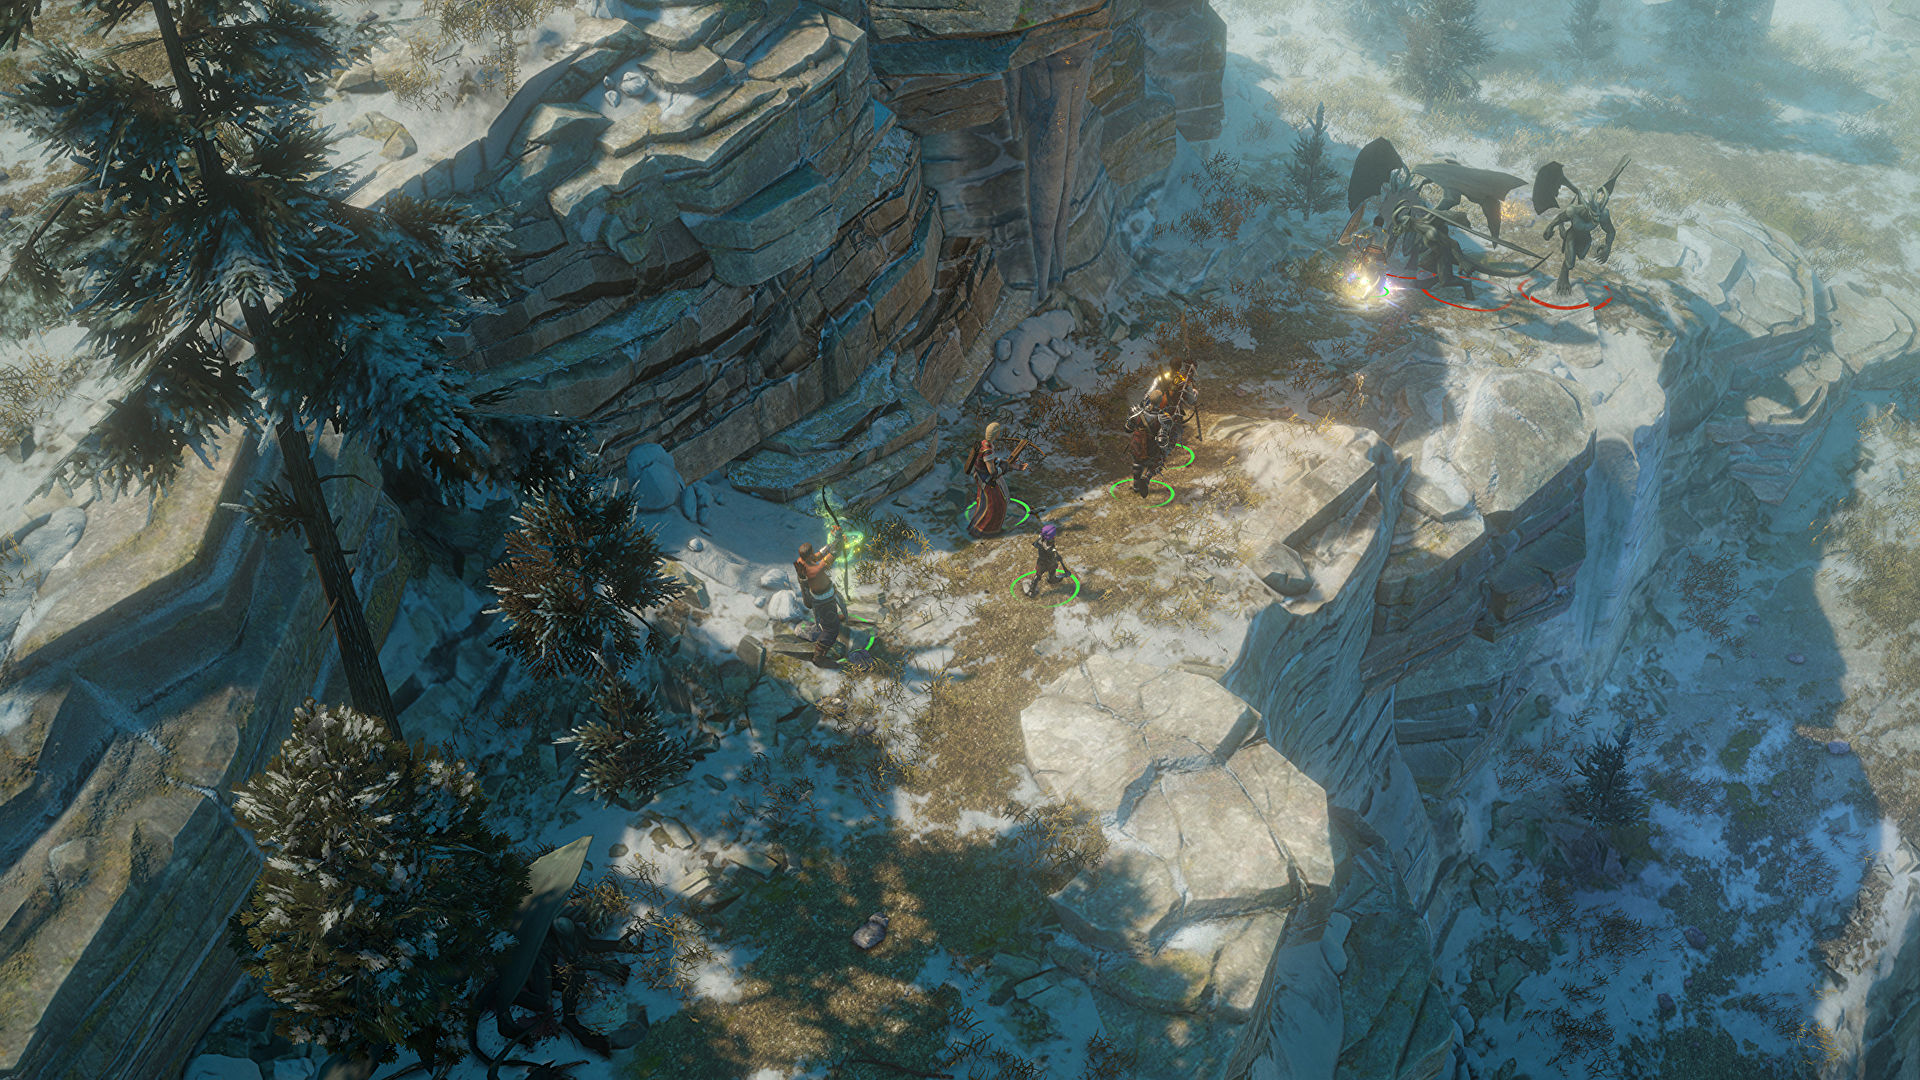 Pathfinder: Wrath Of The Righteous beta is available to backers now